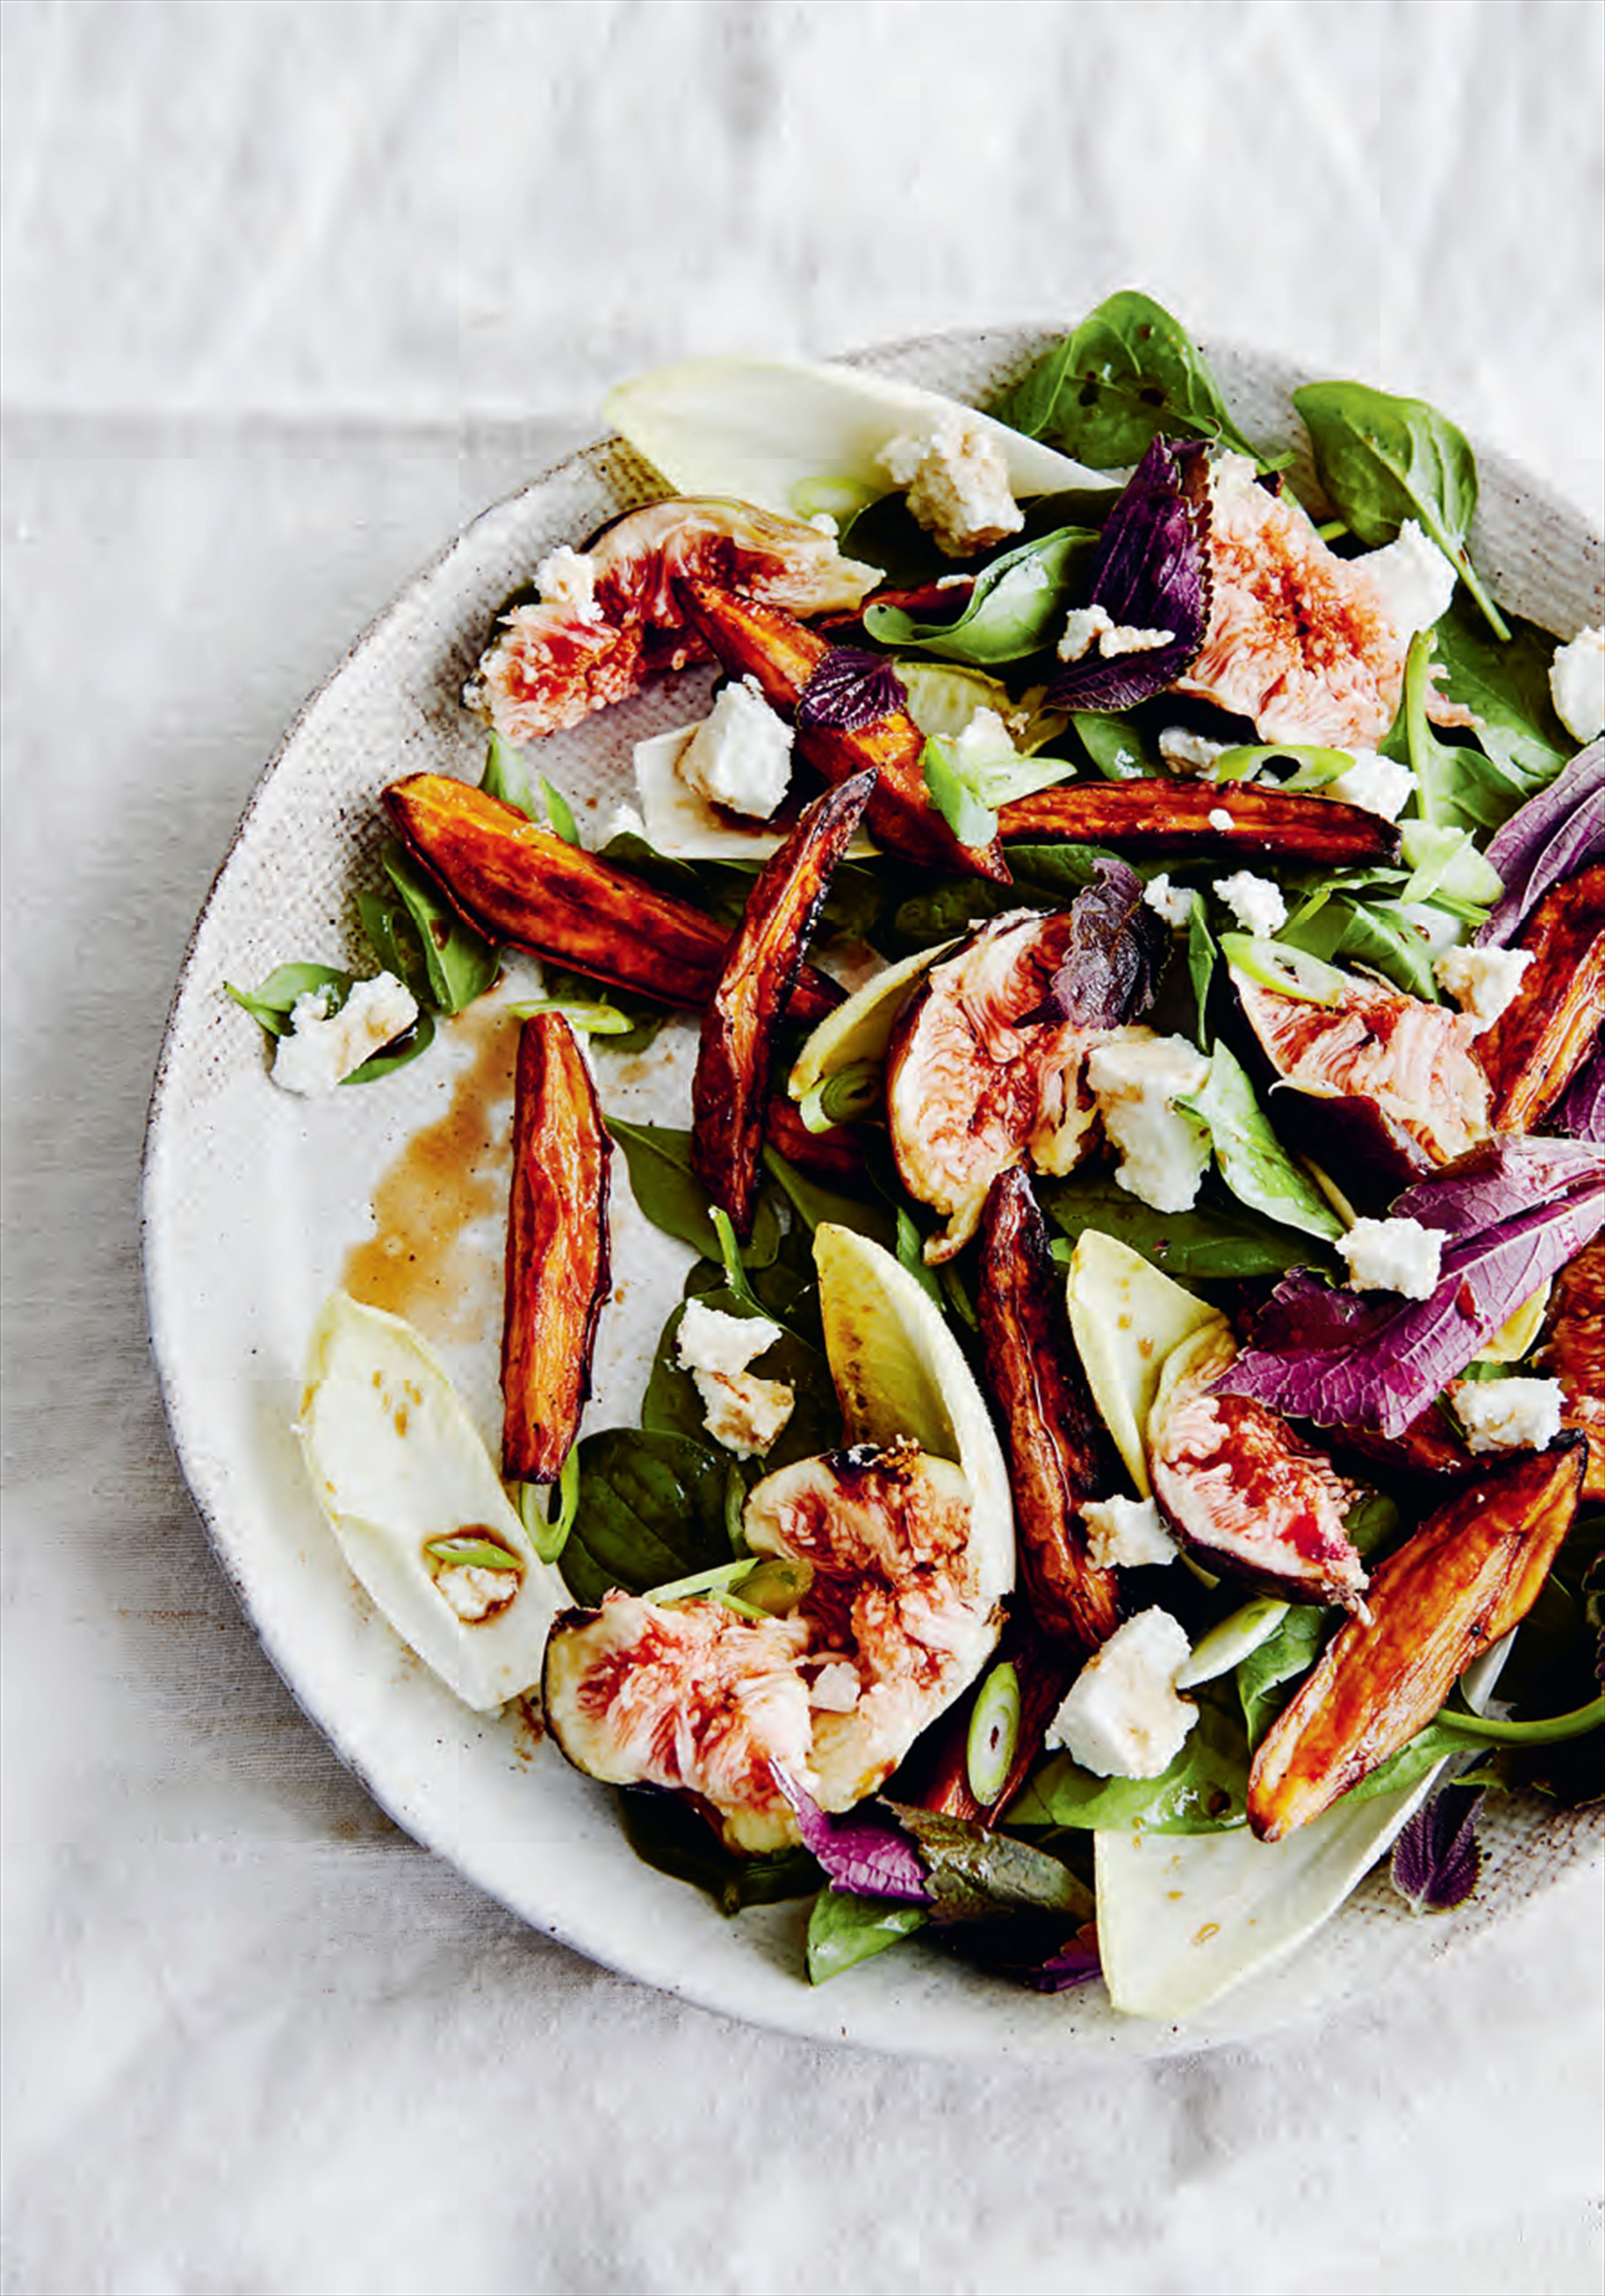 Sumac sweet potato, fig & chicory salad